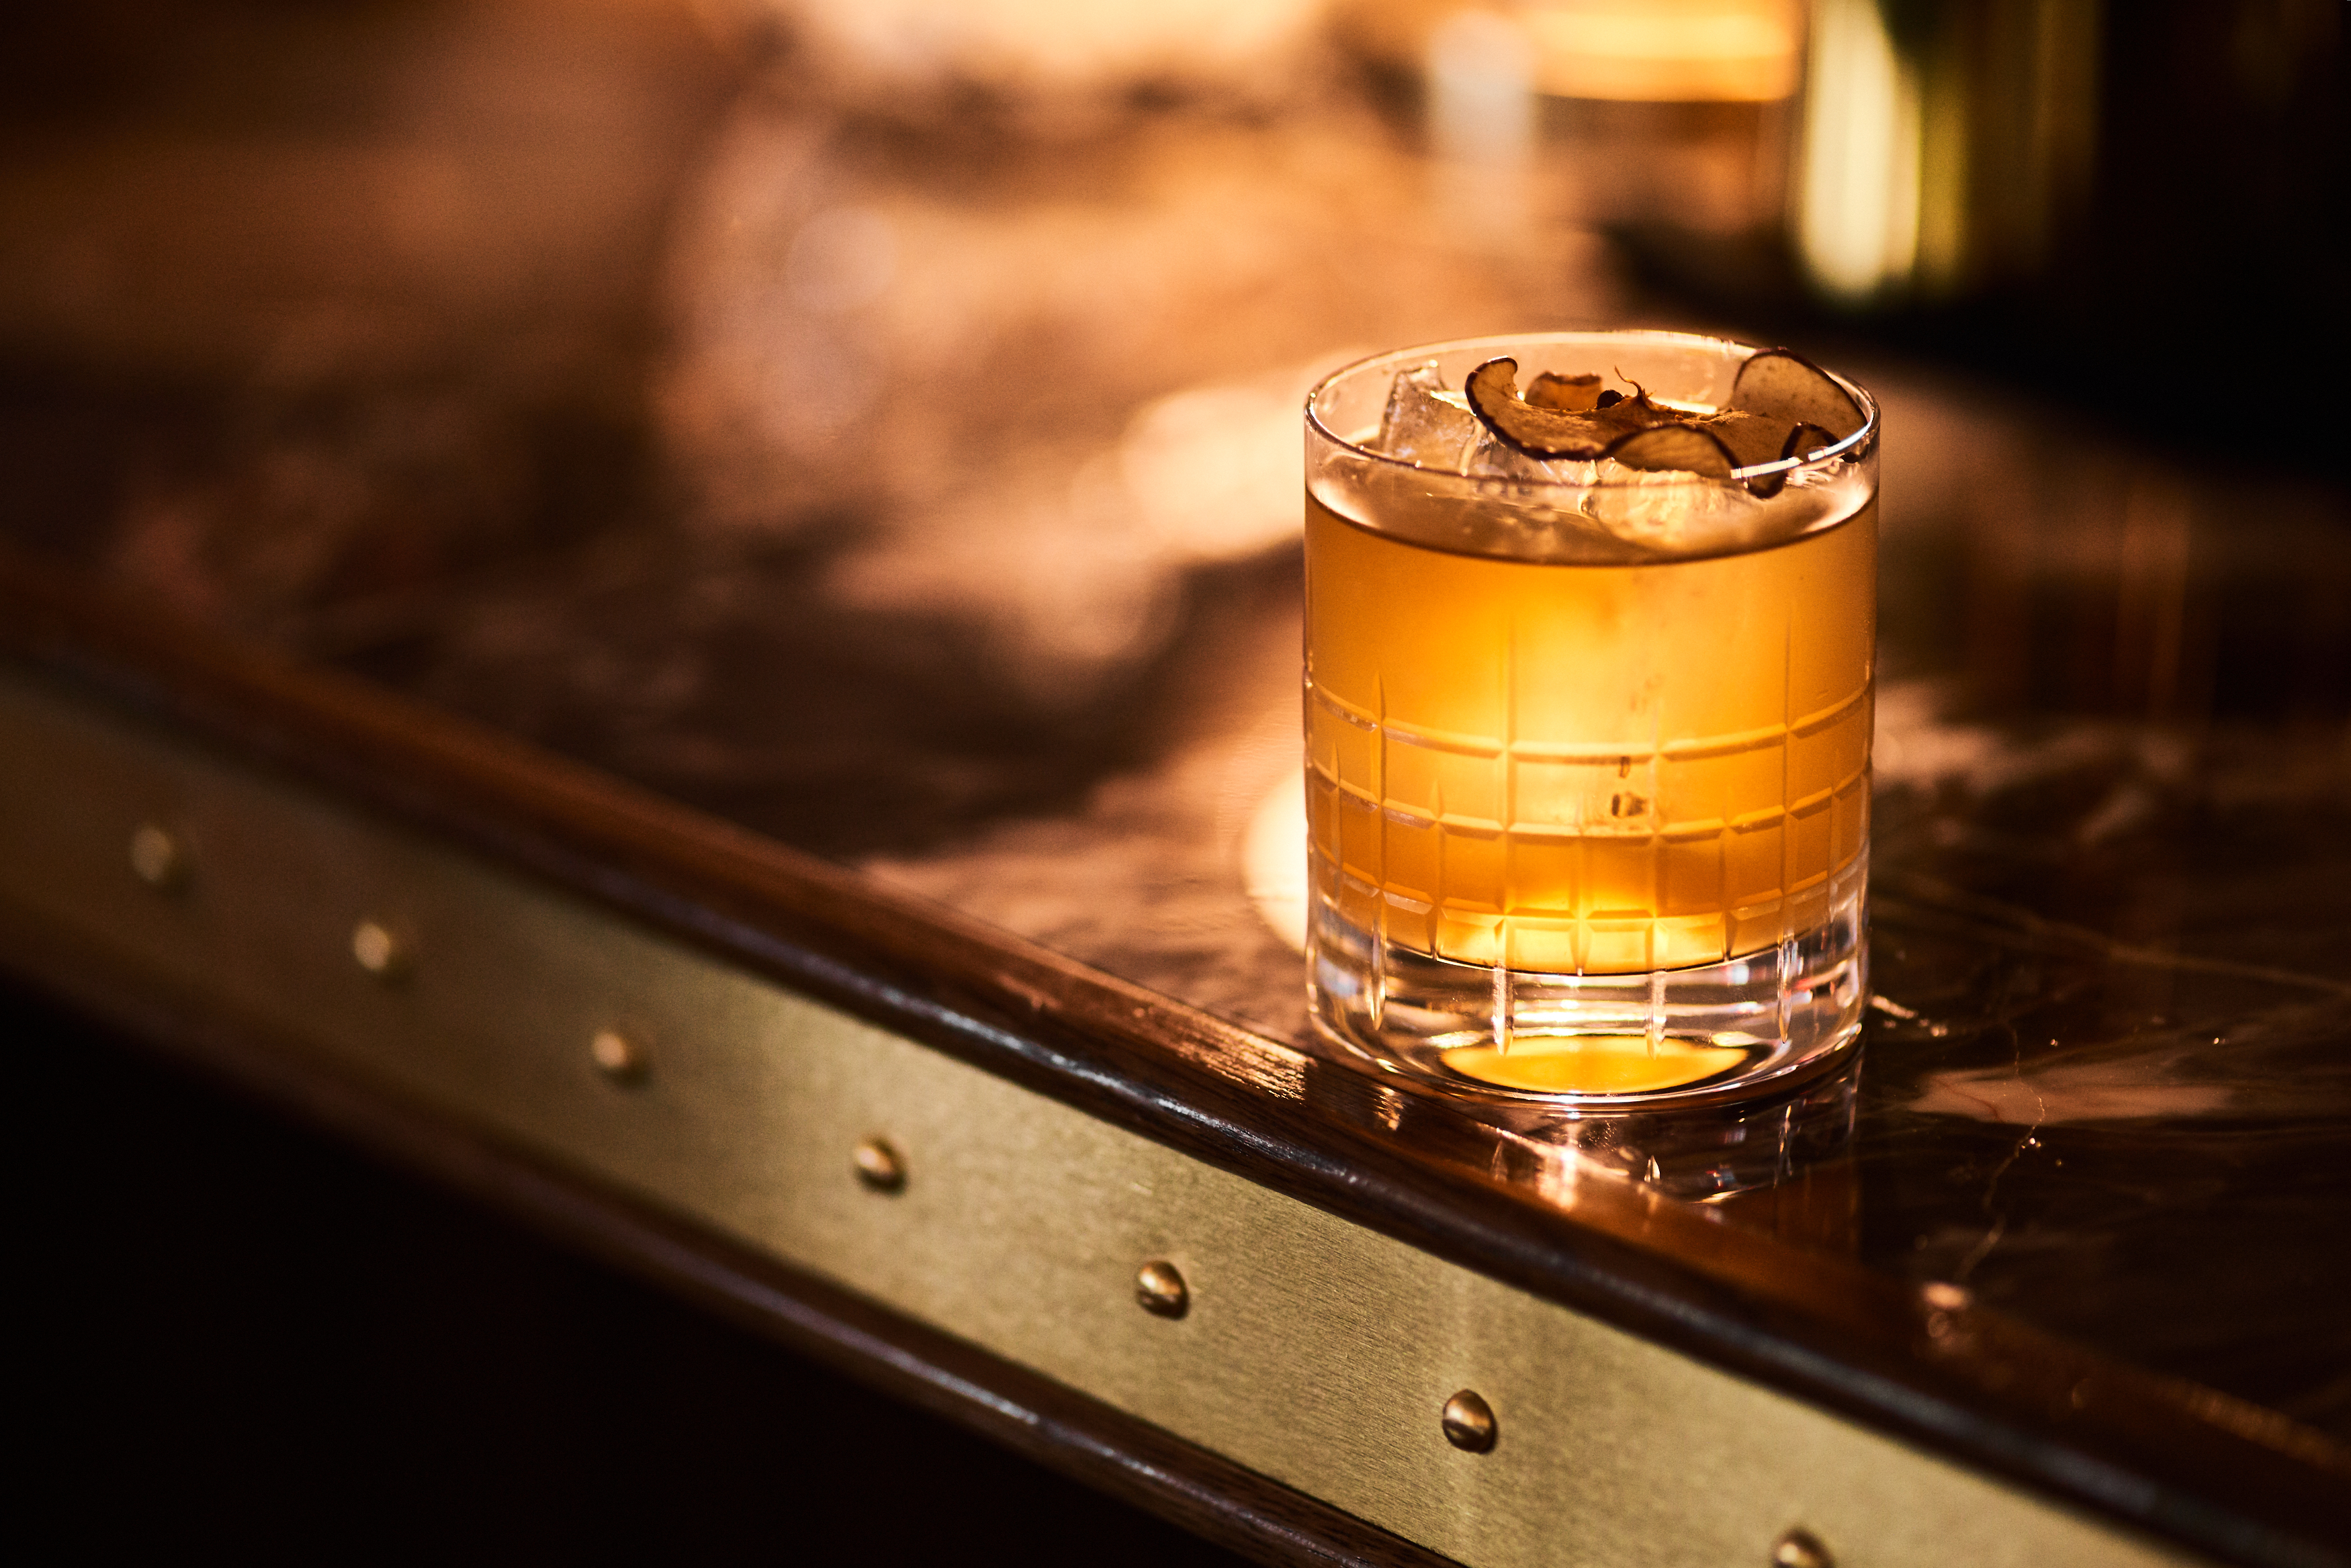 Doyle's has more than 25 different Irish whiskeys priced $12 to $200 and the list is growing. (Image: Courtesy The Dupont Circle Hotel)